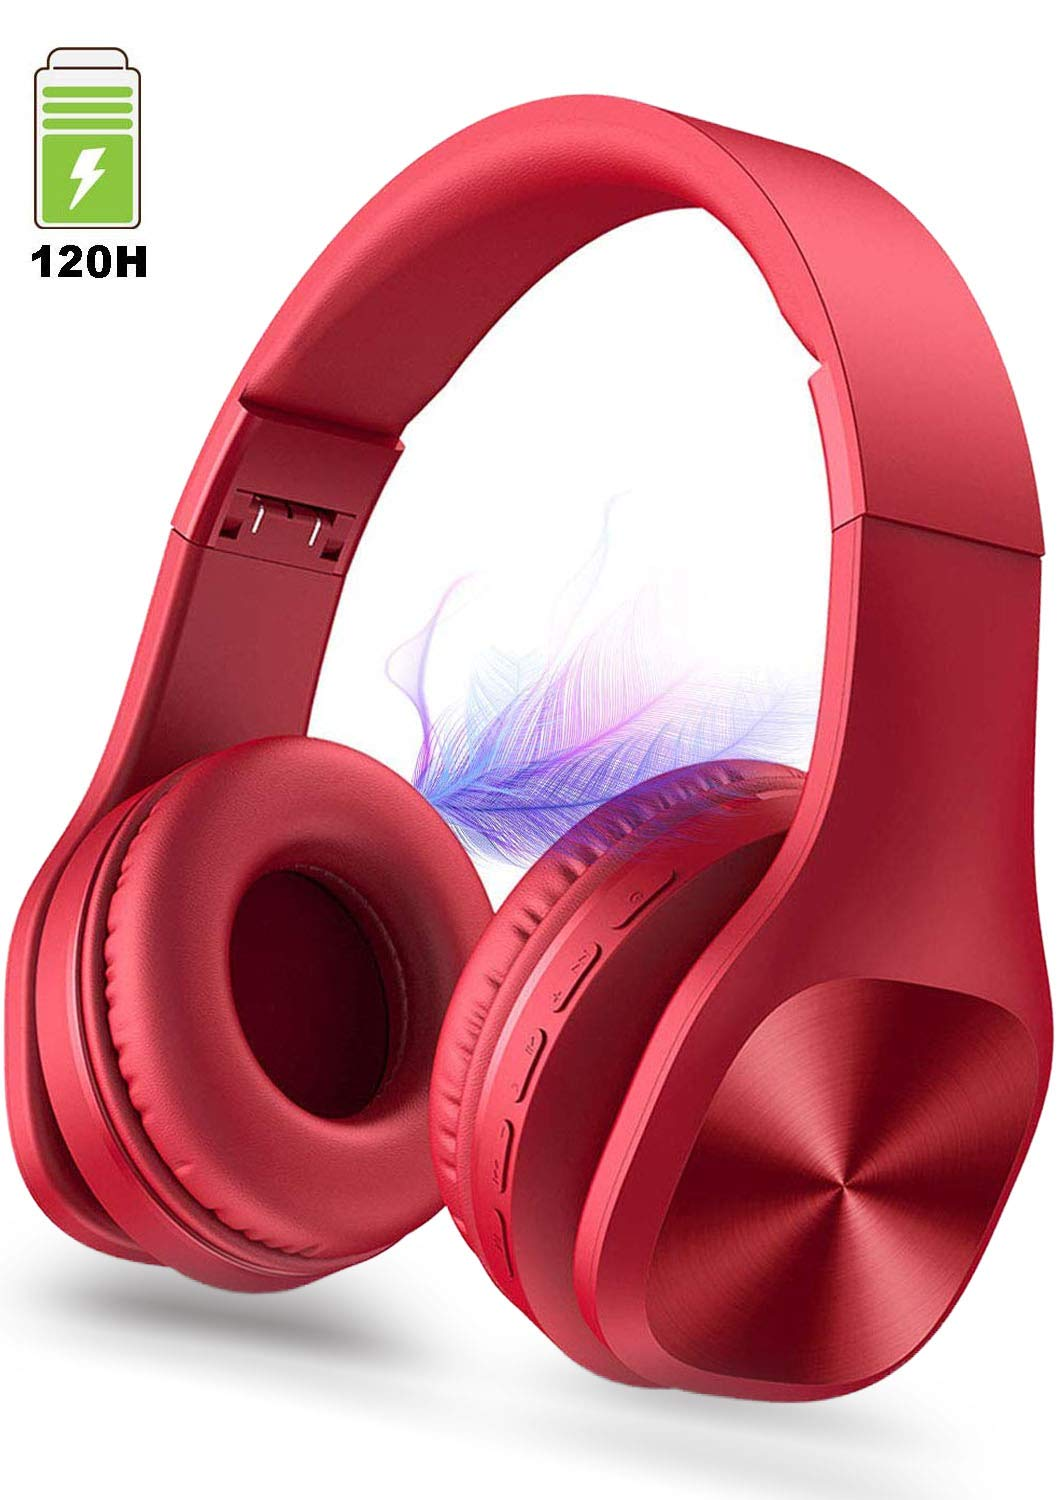 Bluetooth Headphones, Wireless Bluetooth 5.0 Earmuffs Over Ear Stereo Bass Foldable Bluetooth Headphones, Built in Mic, Wired Mode for PC Cell Phones TV F09-Red